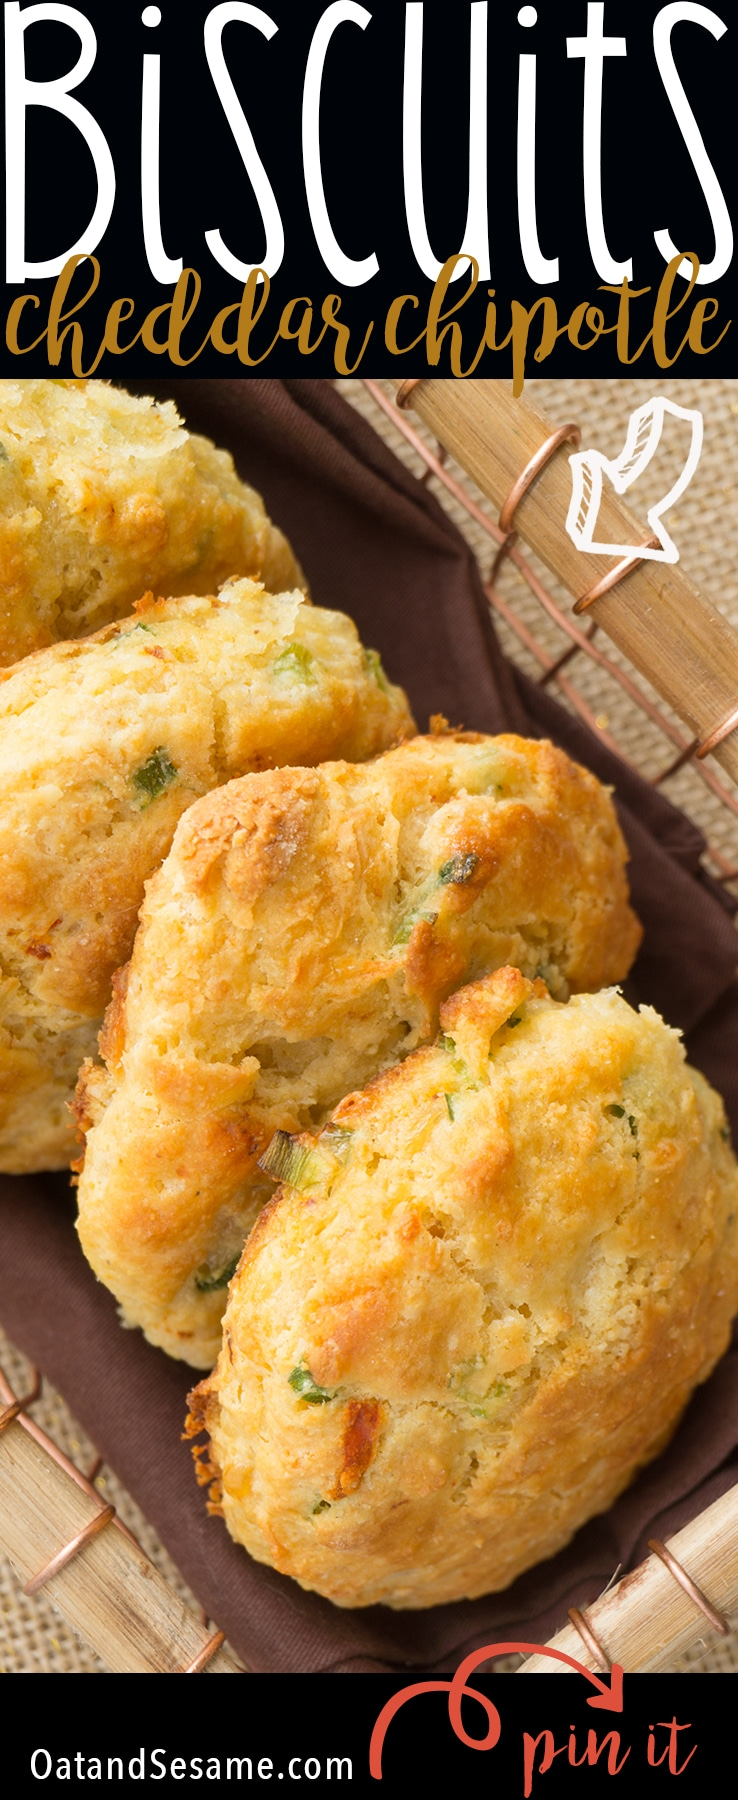 White Cheddar Chipotle Cornmeal Biscuits - Oat&Sesame